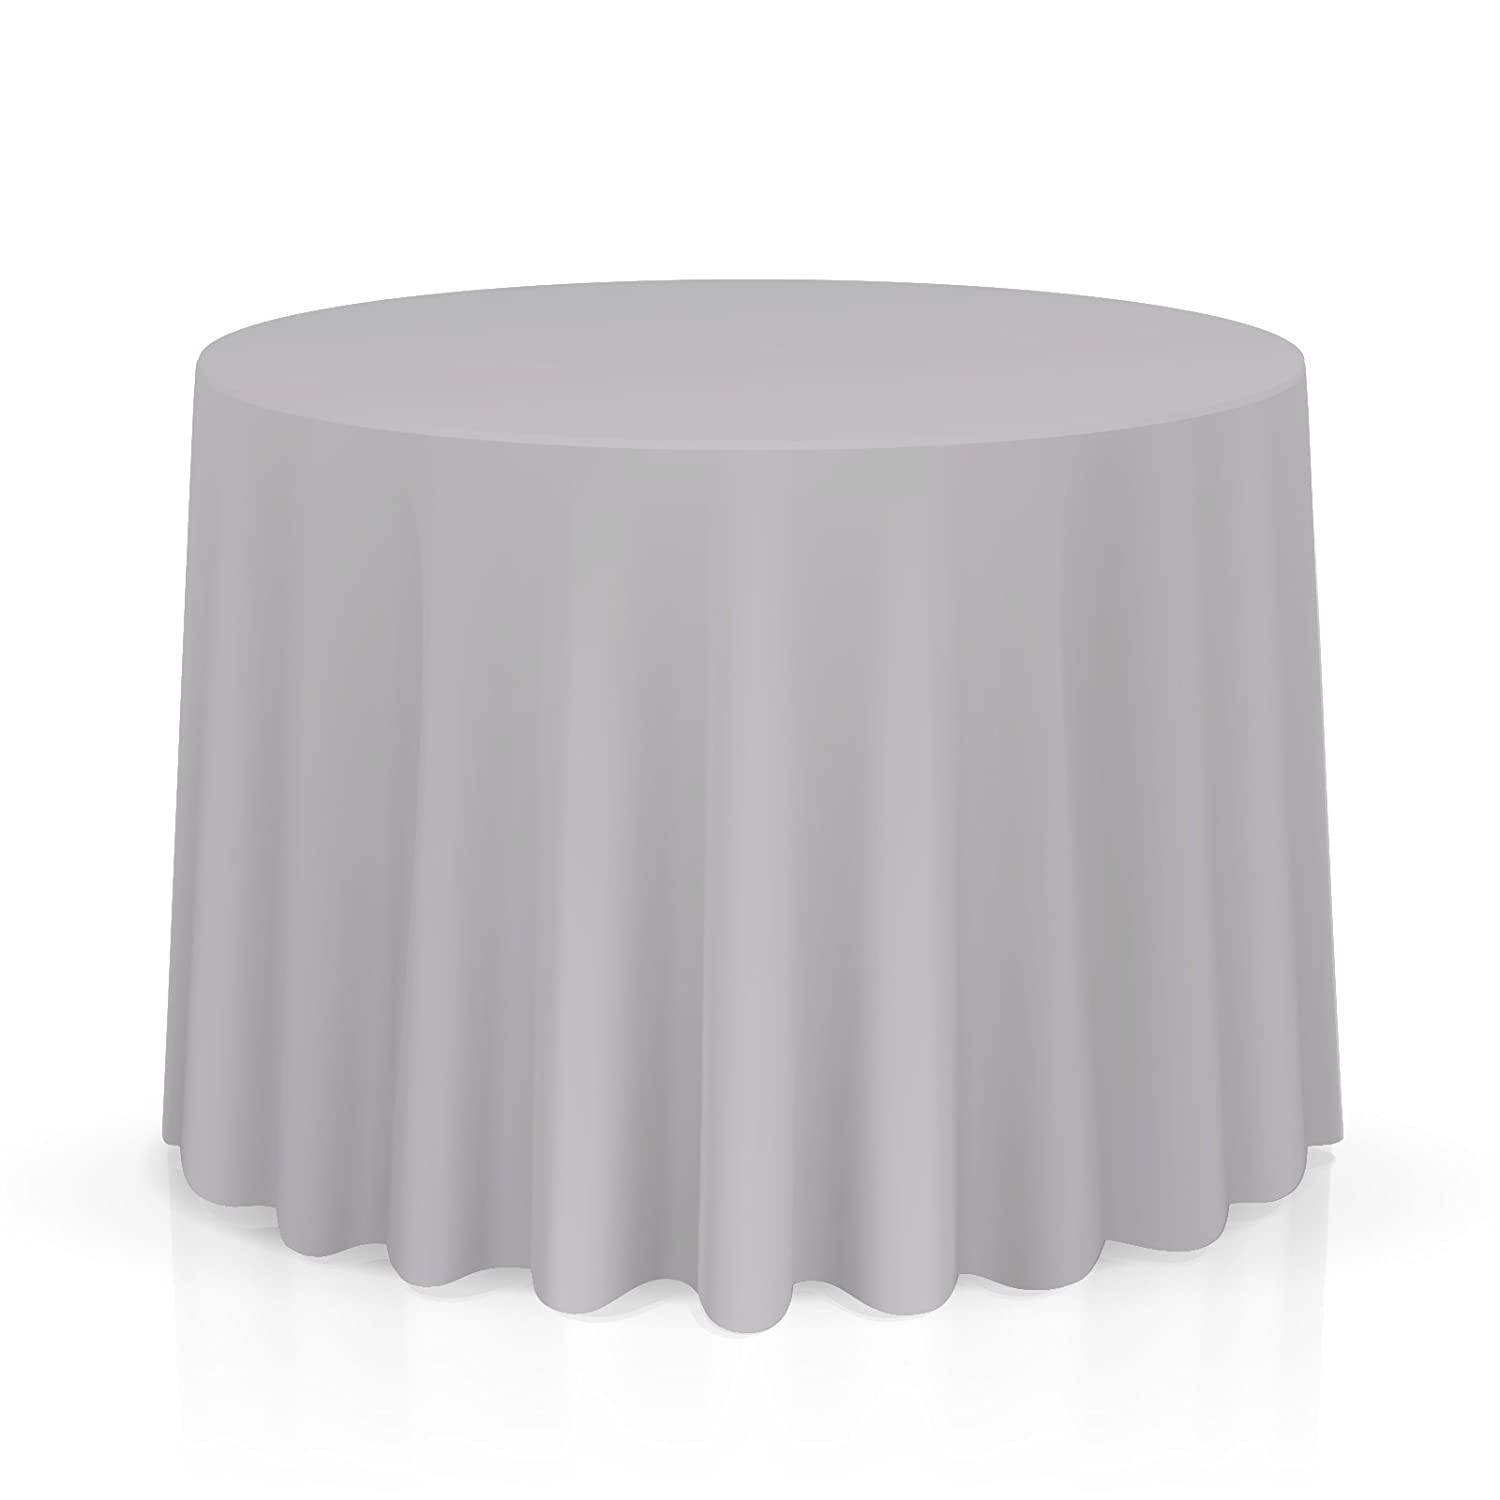 Lanns Linens 70 Round Premium Tablecloth for Wedding//Banquet//Restaurant Polyester Fabric Table Cloth Black